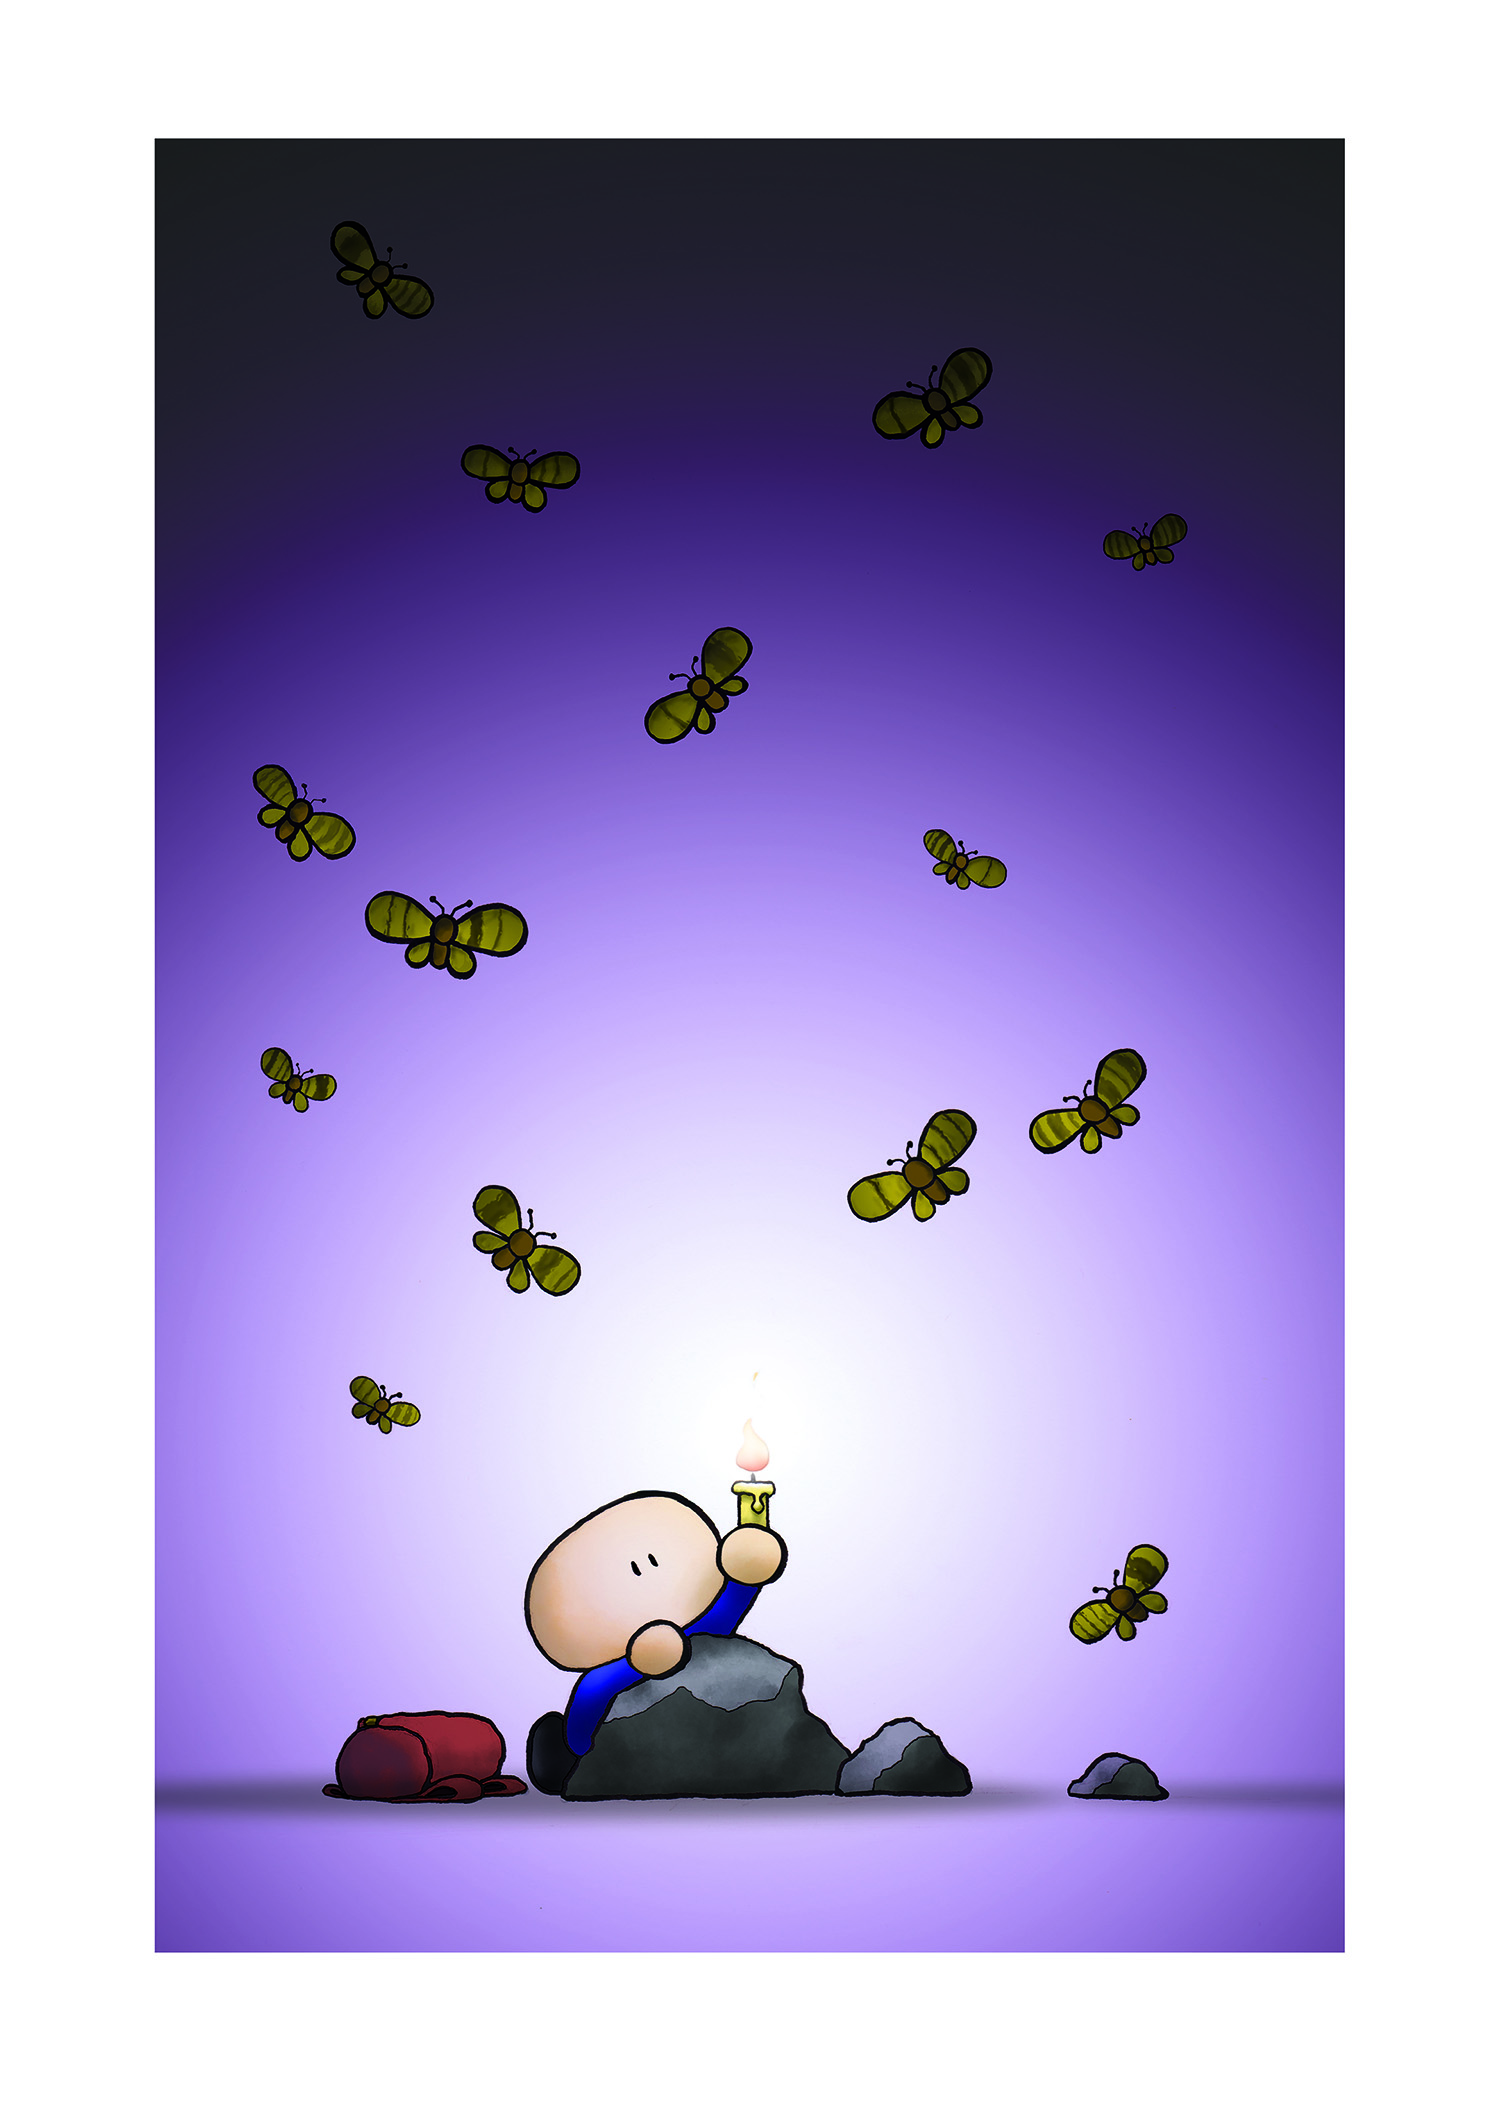 a boy lost in a cave is surrounded by flying moths that spell out THERE IS YET HOPE IN DARKEST NIGHT